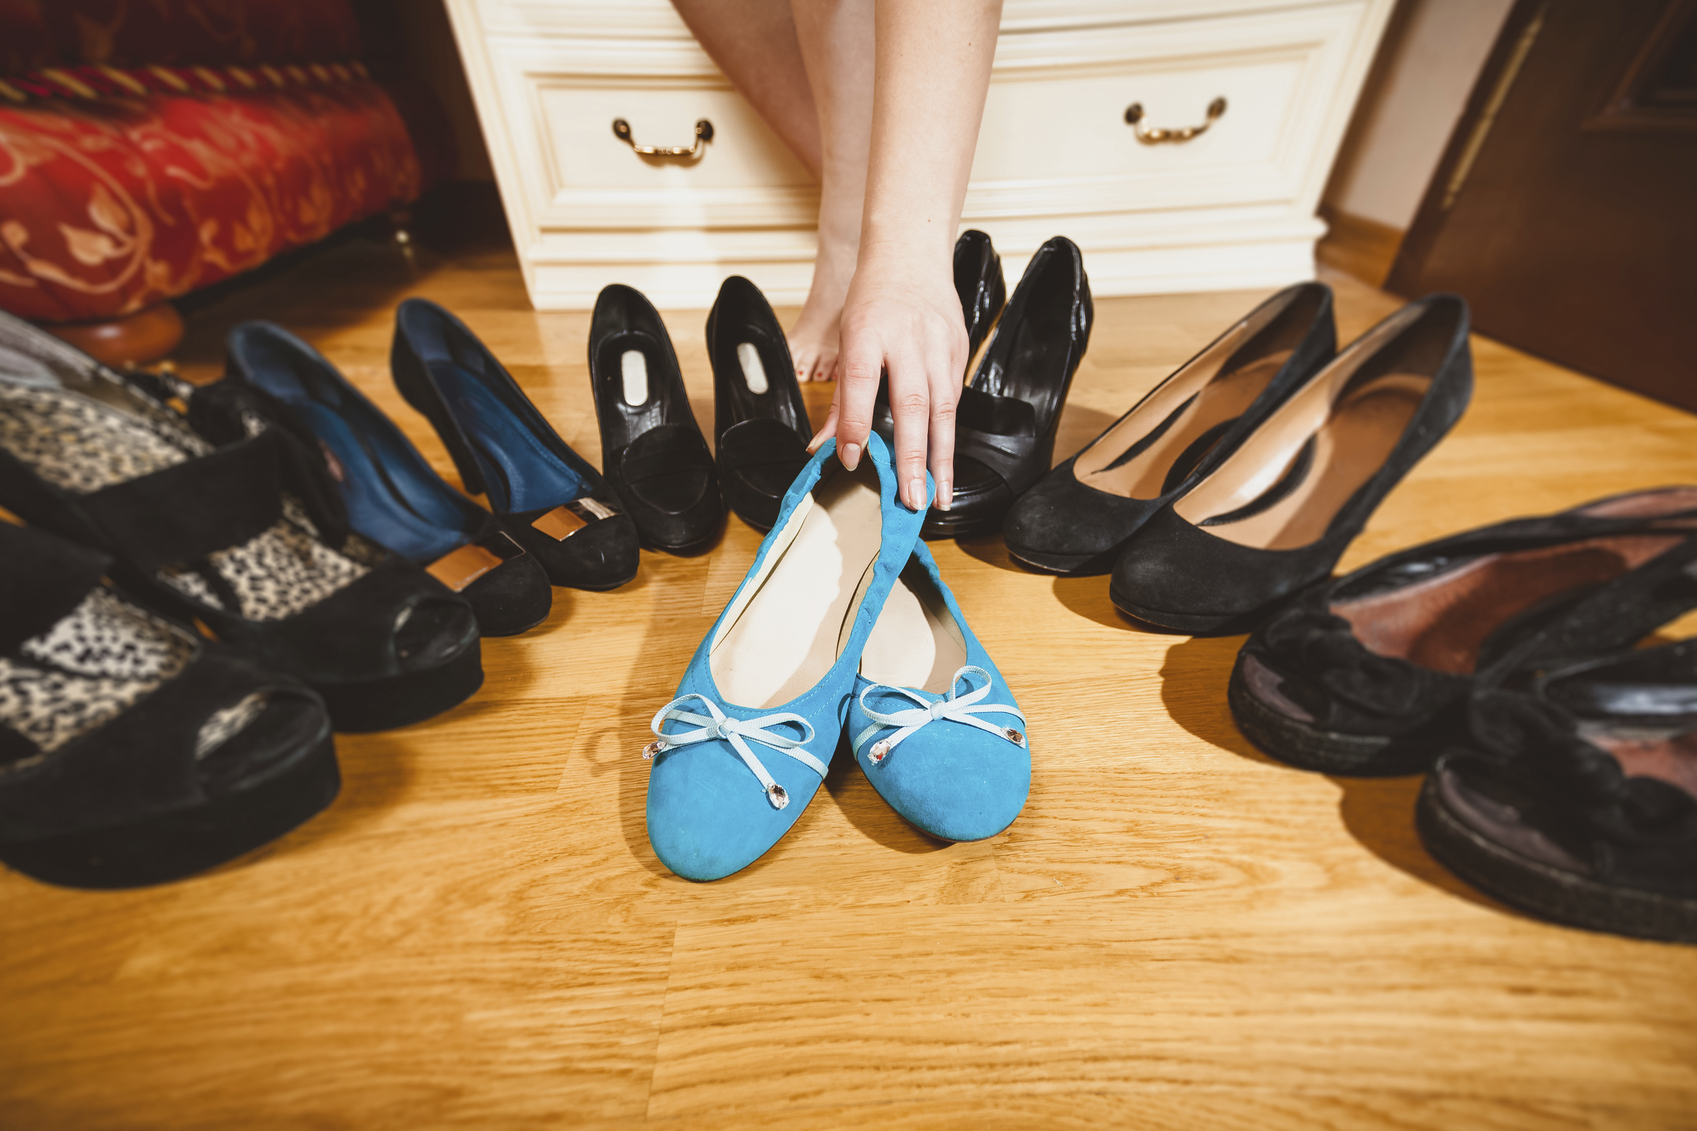 Create your own little shoe-filled hideaway image: artfoliophoto